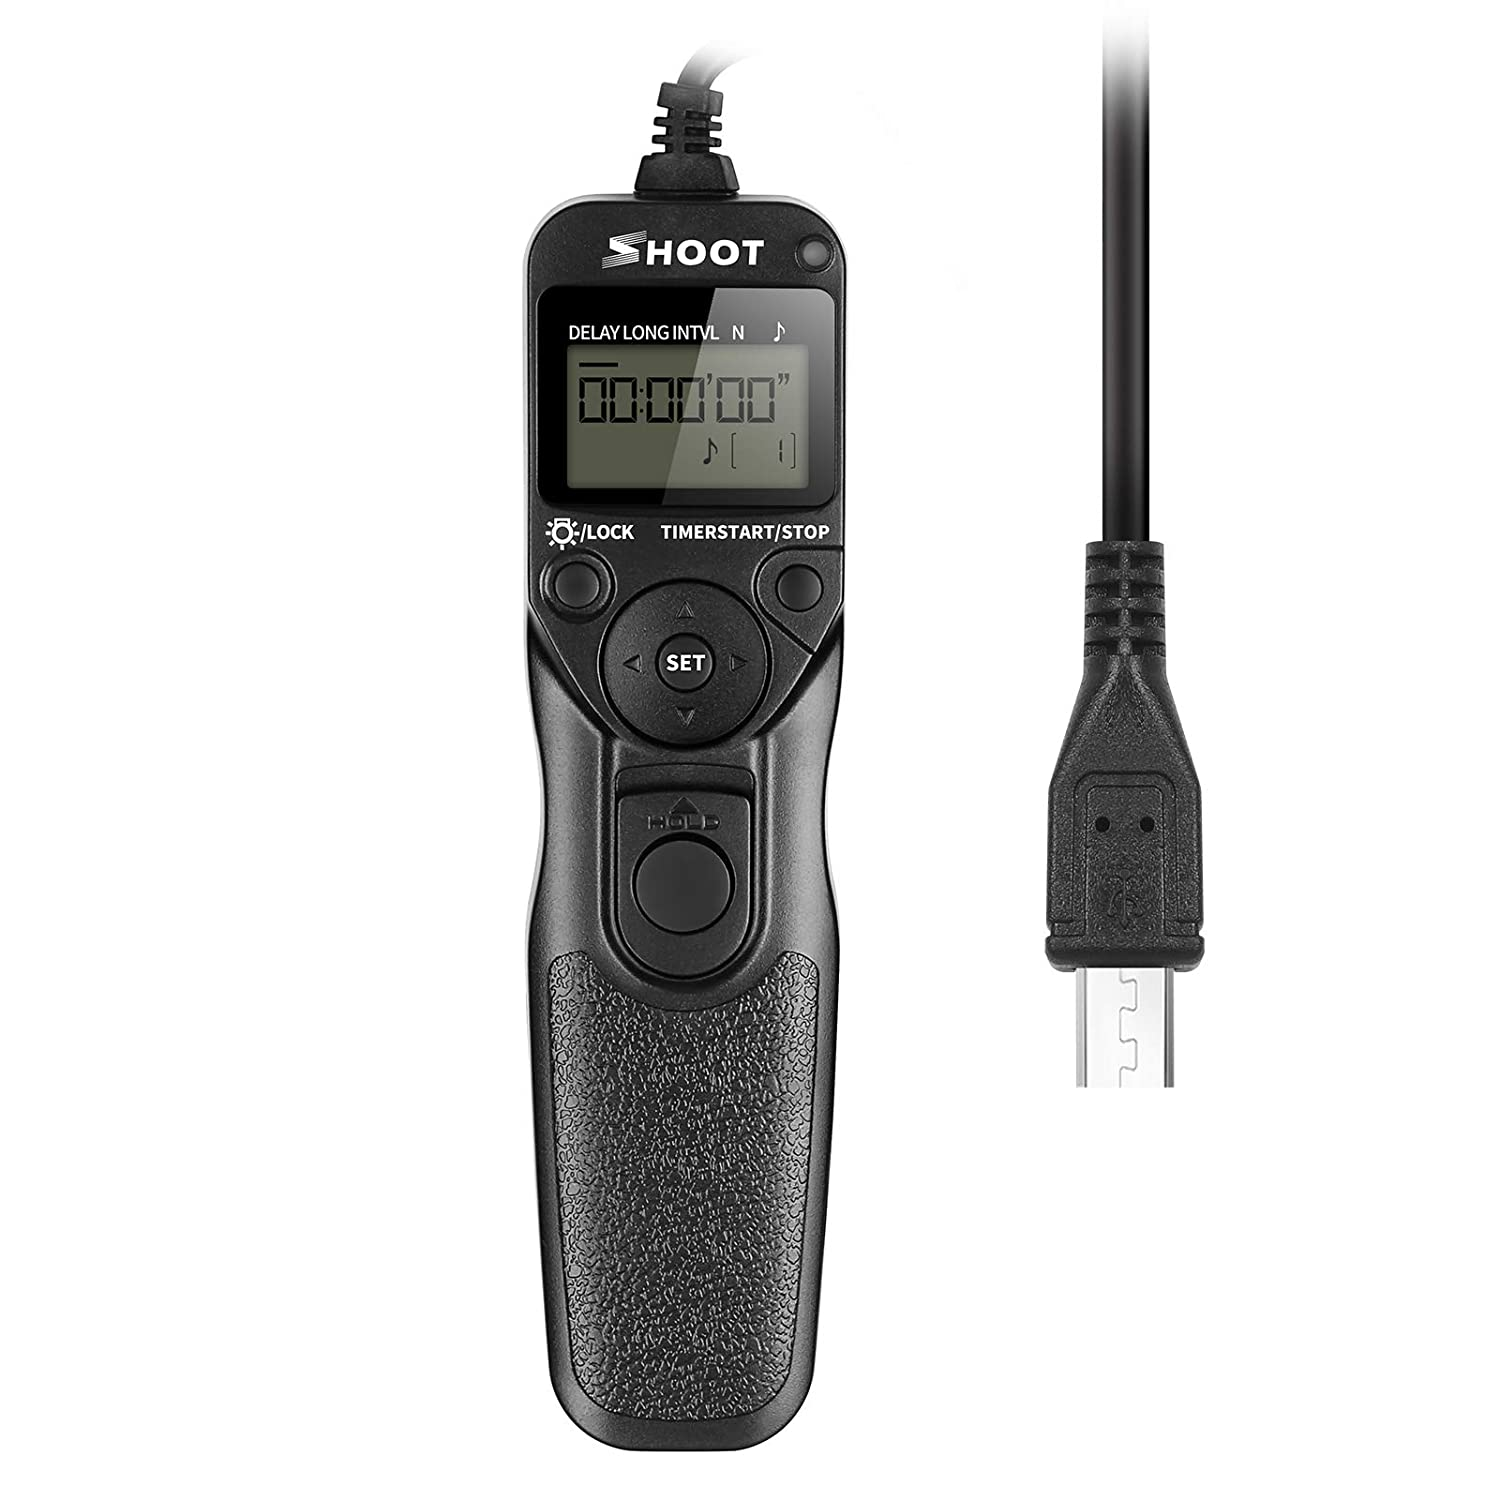 SHOOT Rm-vpr1 LCD Screen Timer Remote Shutter Release Time-lapse for Sony Alpha A7,A7R,A7II,A3000,A6000,SLT-A58, NEX-3NL, DSC-HX300, DSC-RX100M3, DSC-RX100M2,DSC-RX100II, DSC-RX100III Cameras